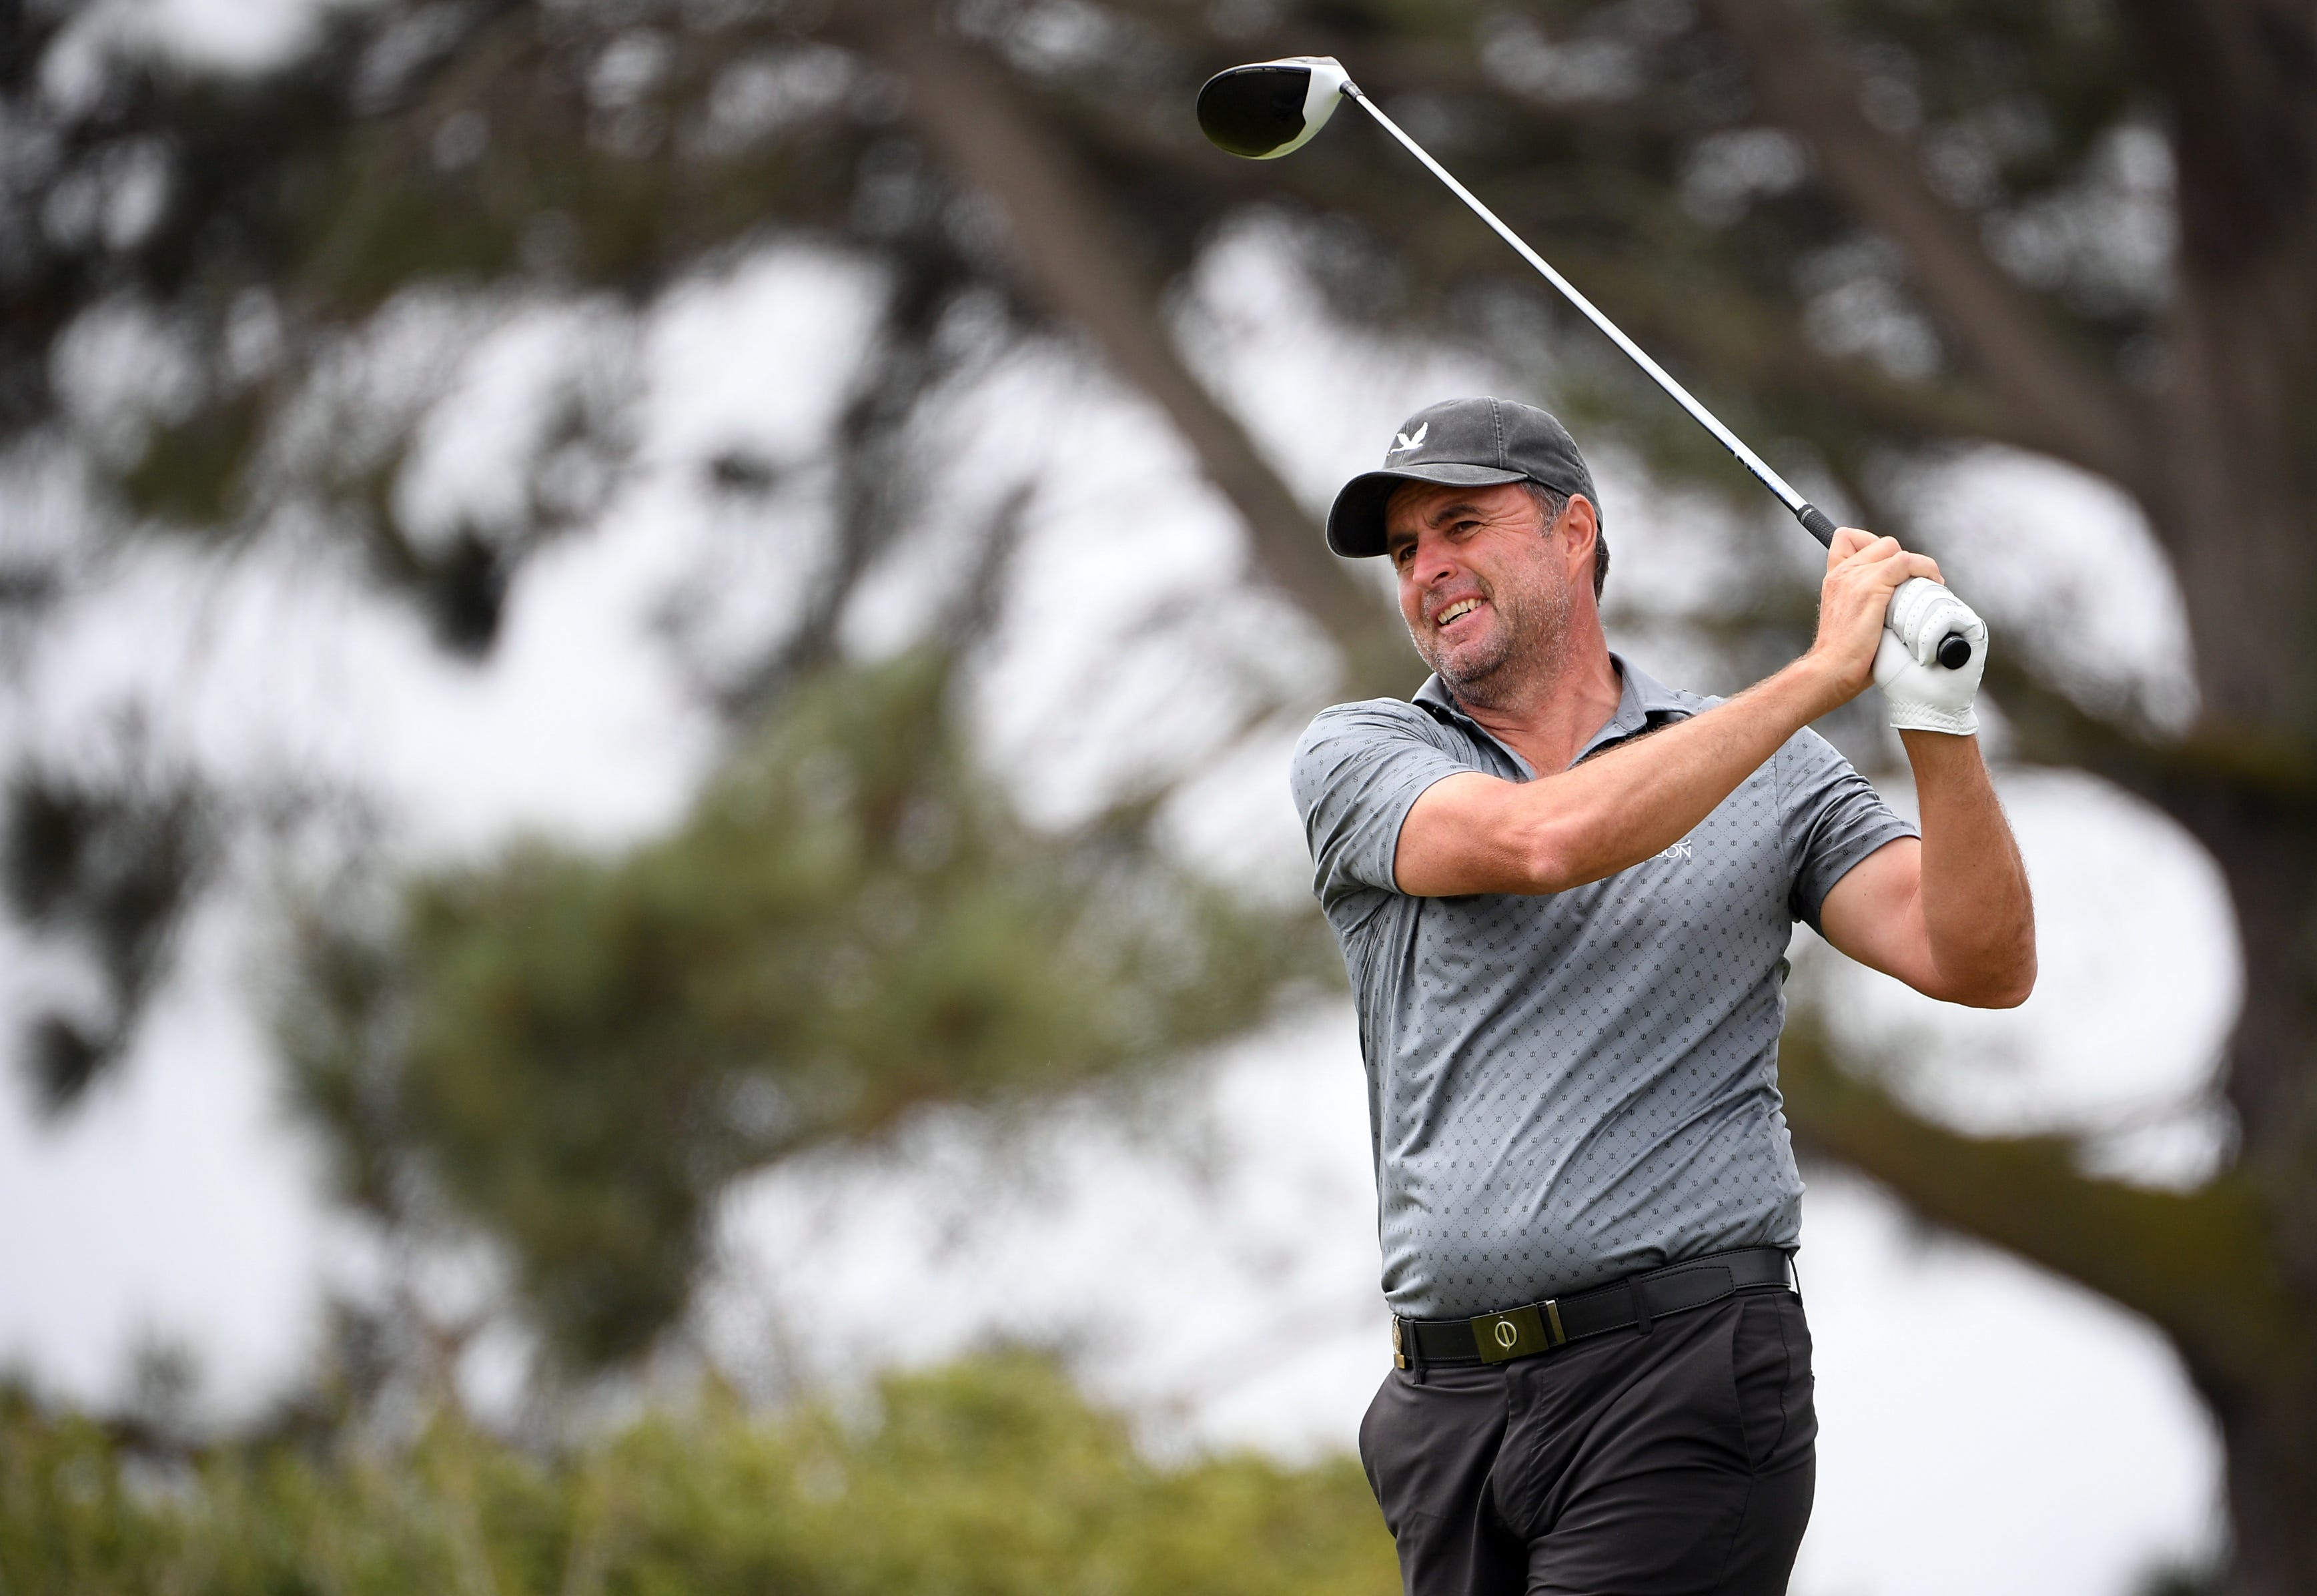 Meet the unheralded Englishman tied for lead at U.S. Open